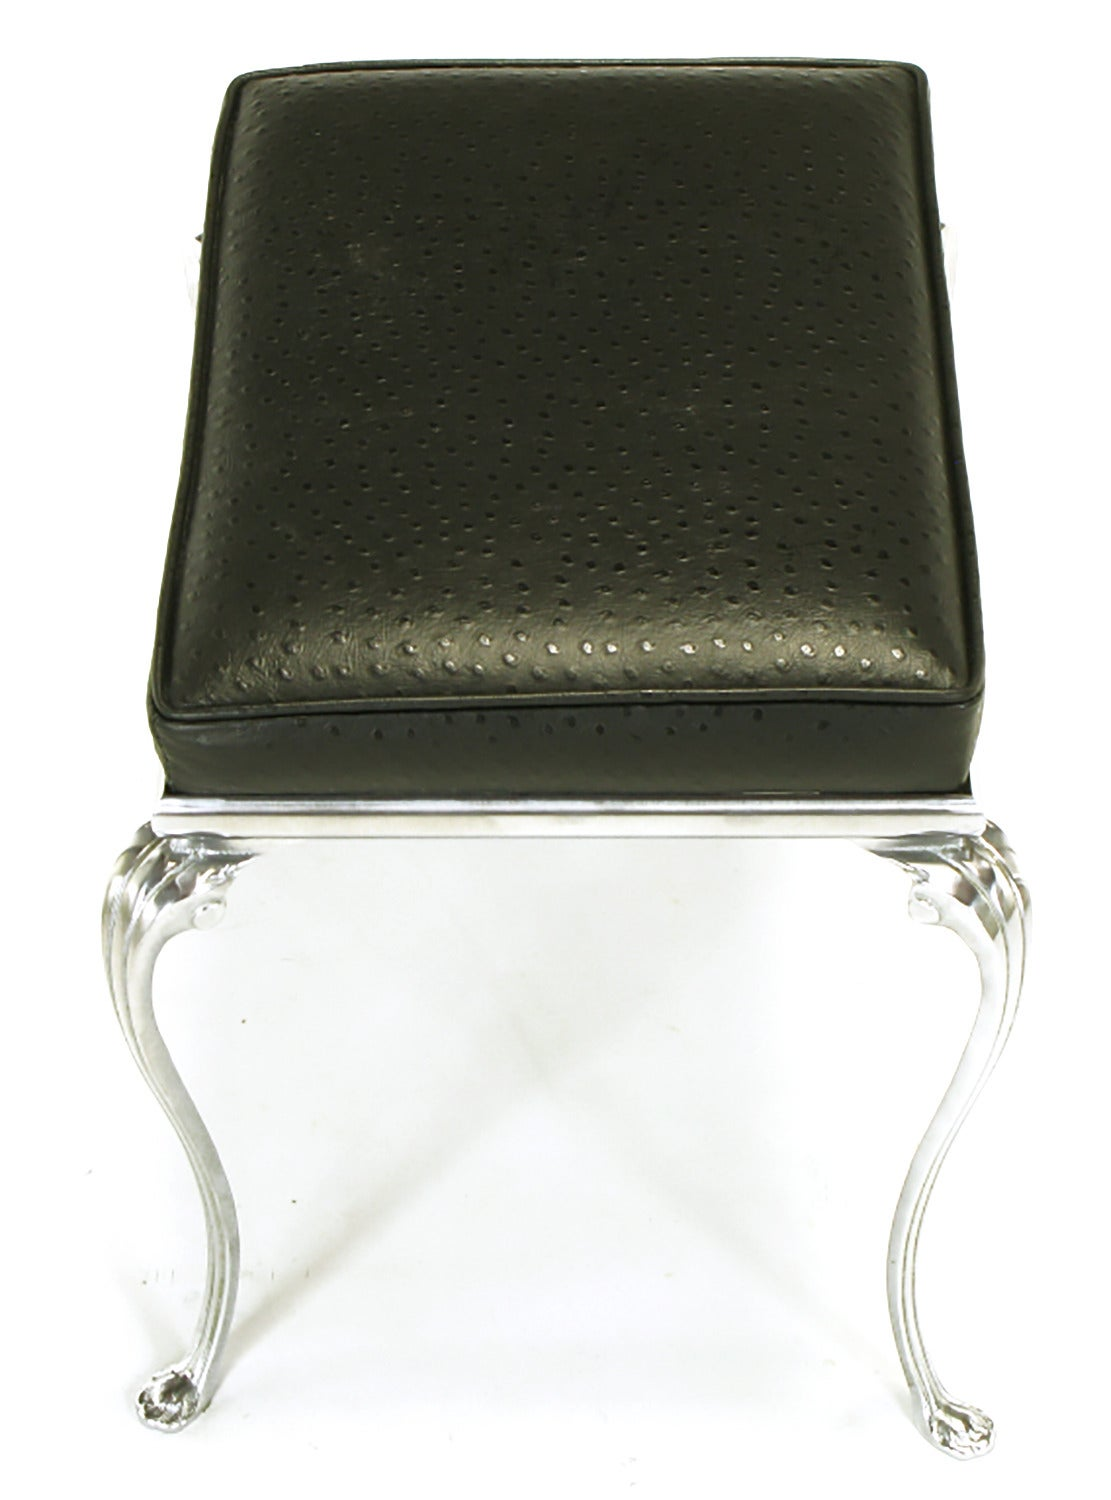 Polished Aluminum Cabriole Leg Bench With Ostrich Embossed